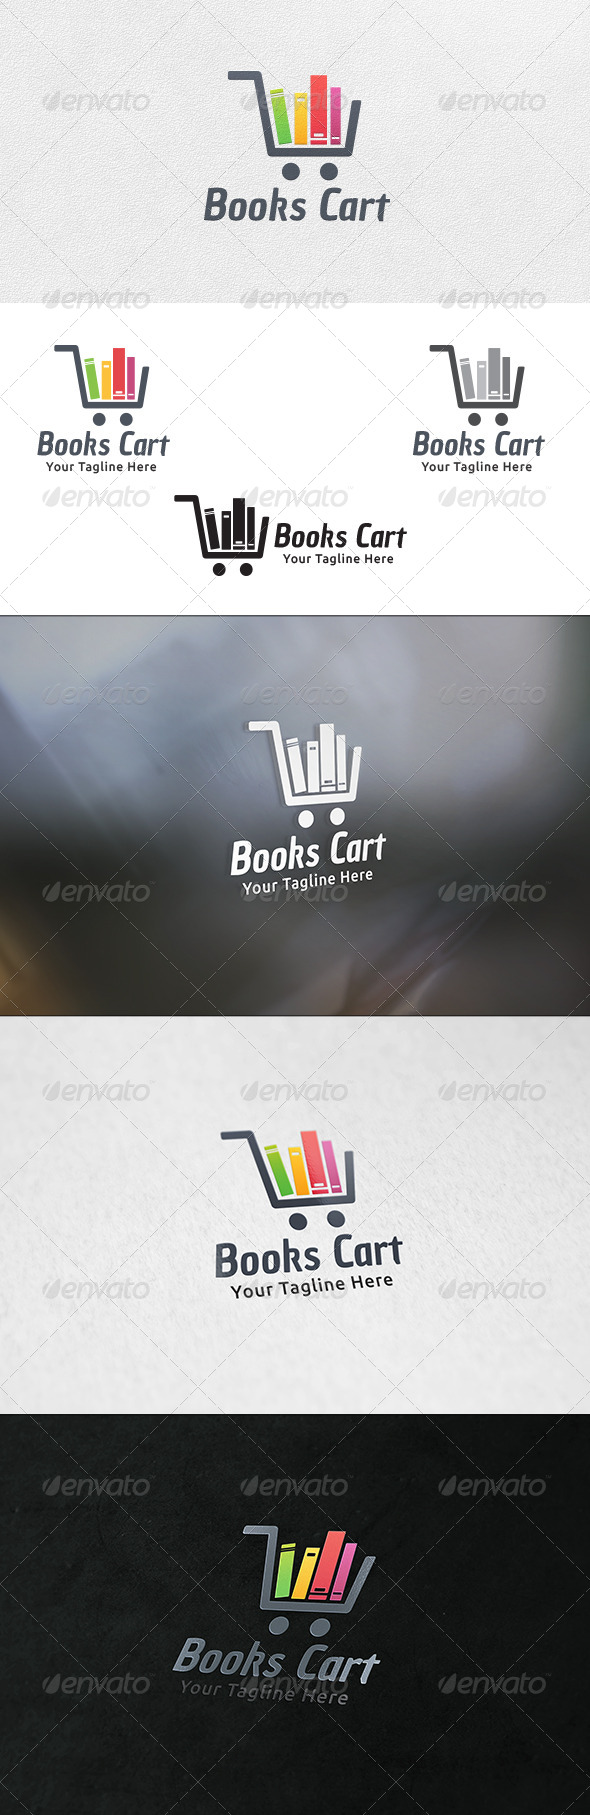 Books Cart - Logo Template